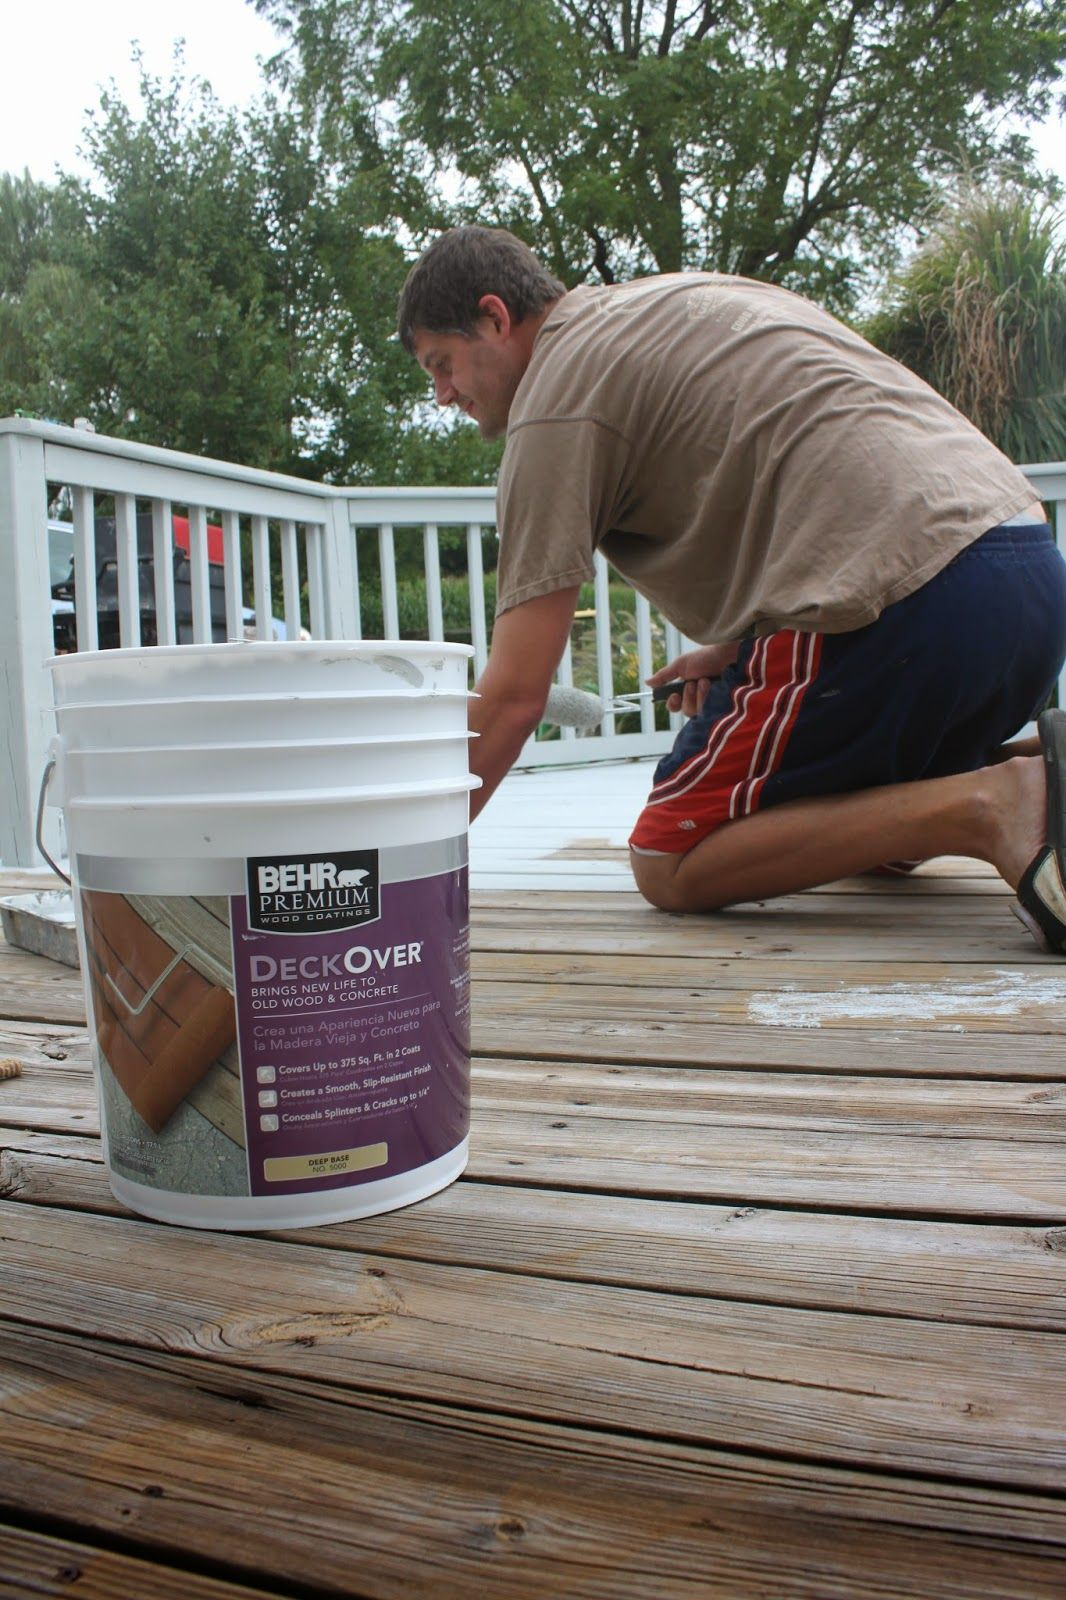 Our Deck Makeover With Behr Deckover In Cape Cod Gray